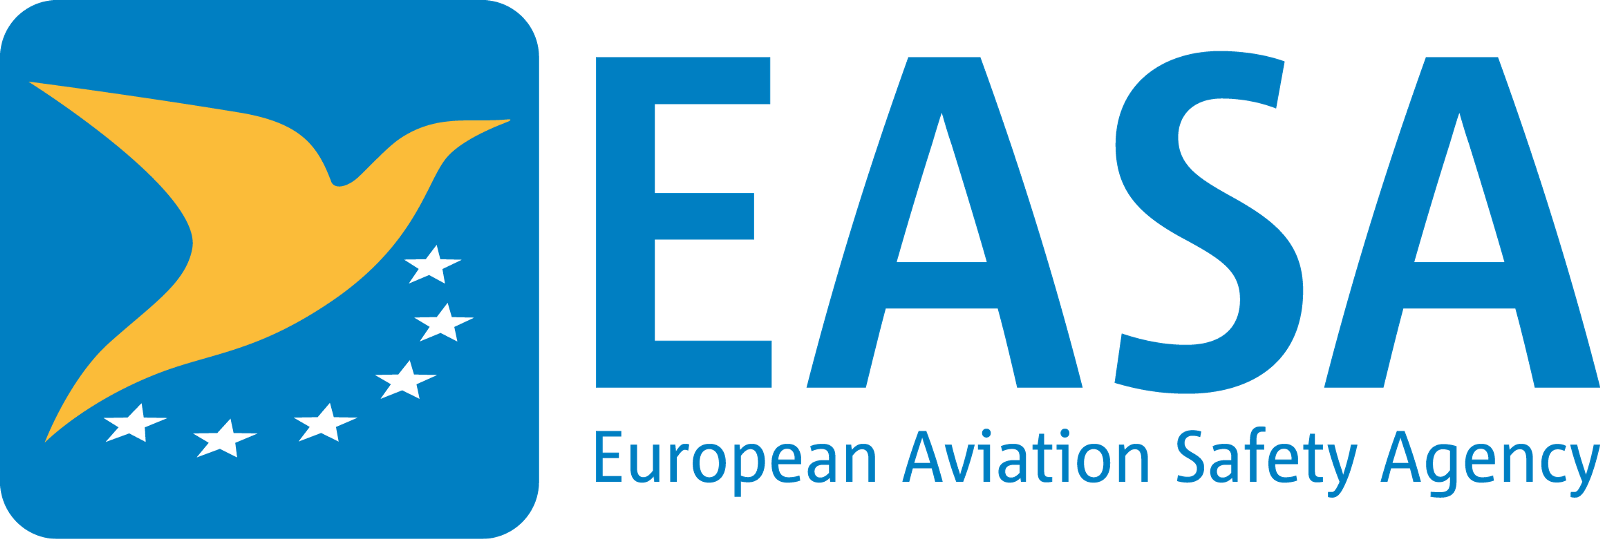 European Aviation Safety Agency - EASA Approved Since 2006